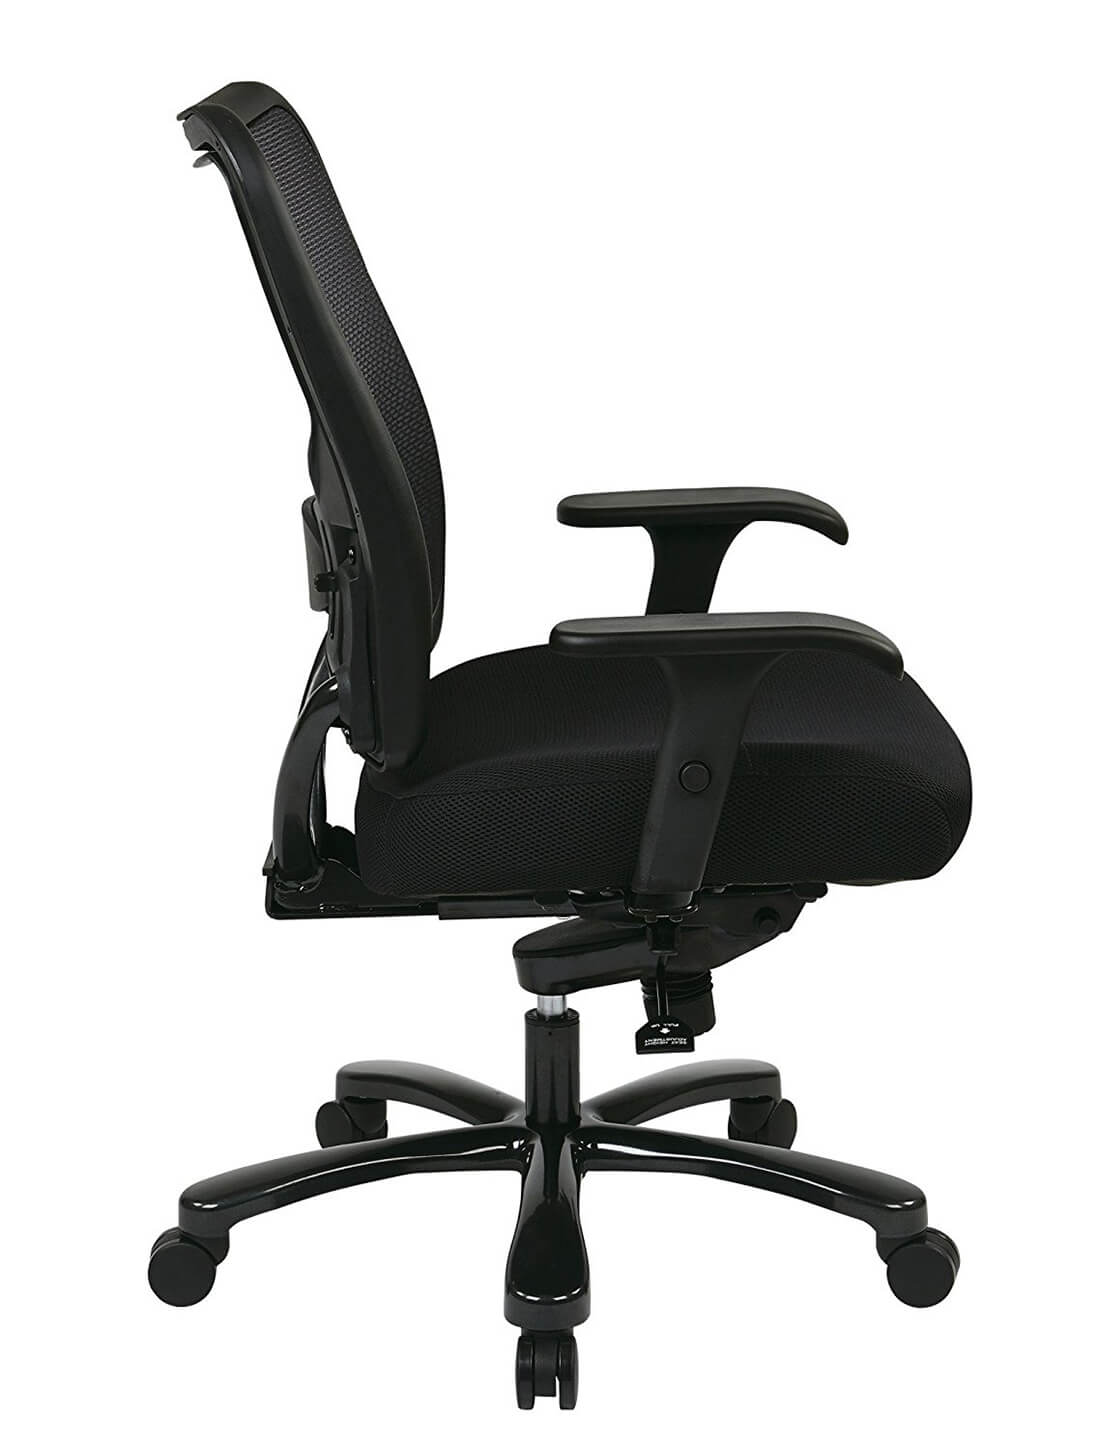 best desk chair under 200 diy bedroom hanging 14 new and office chairs in 2018 100